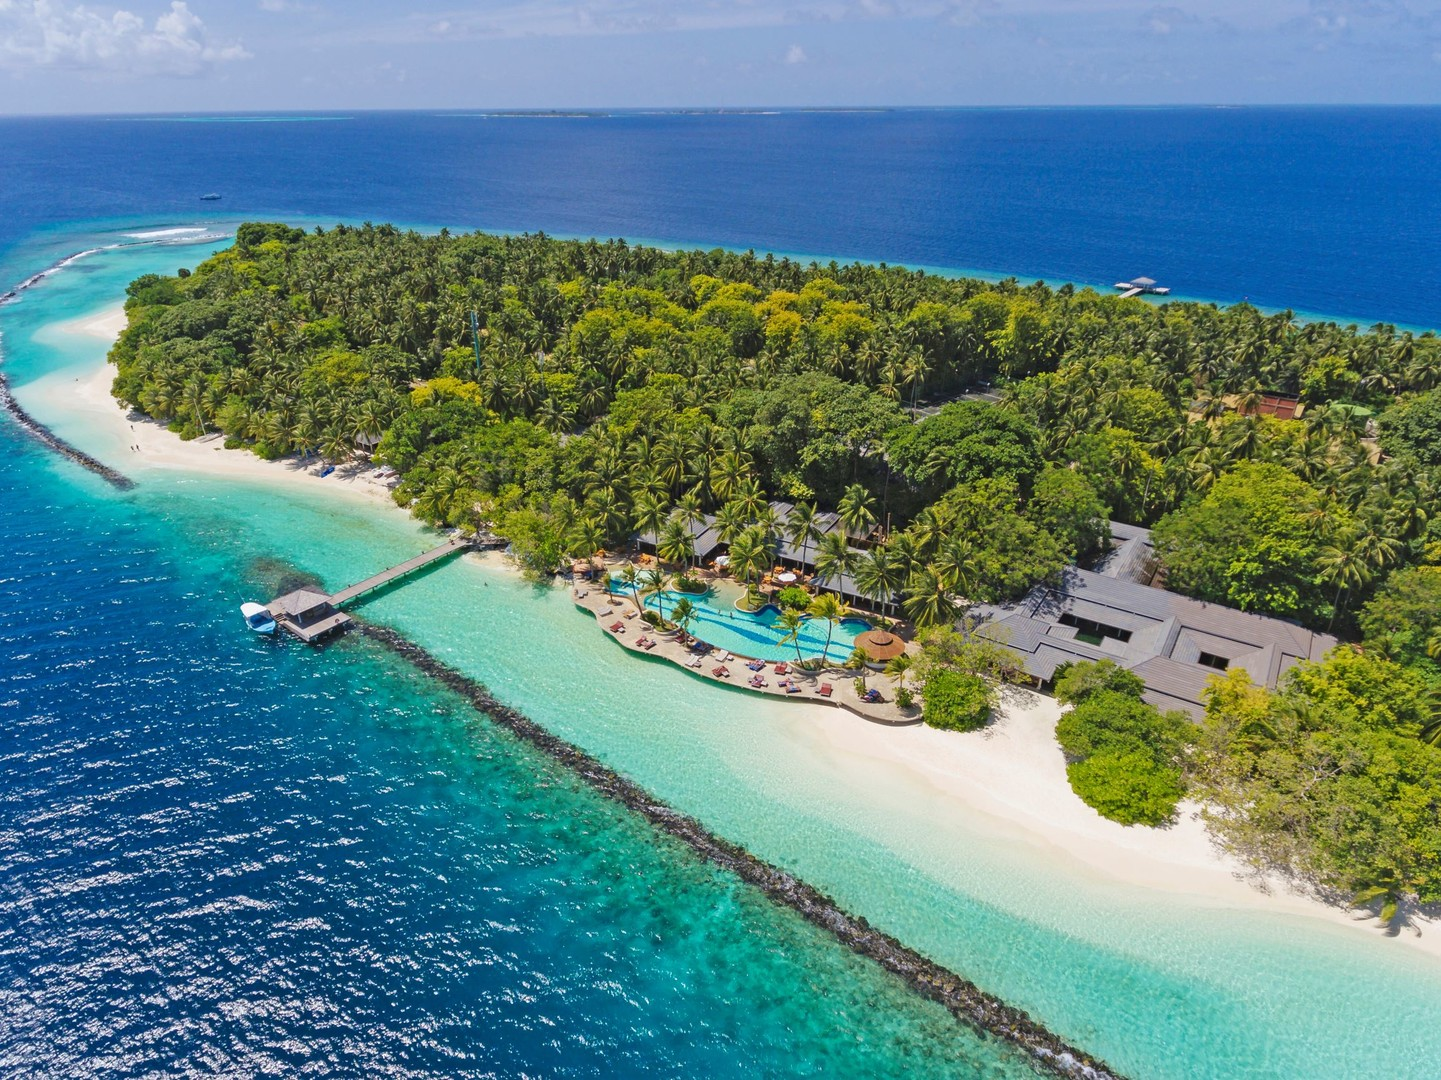 Royal Island Resort & Spa Maldives #2